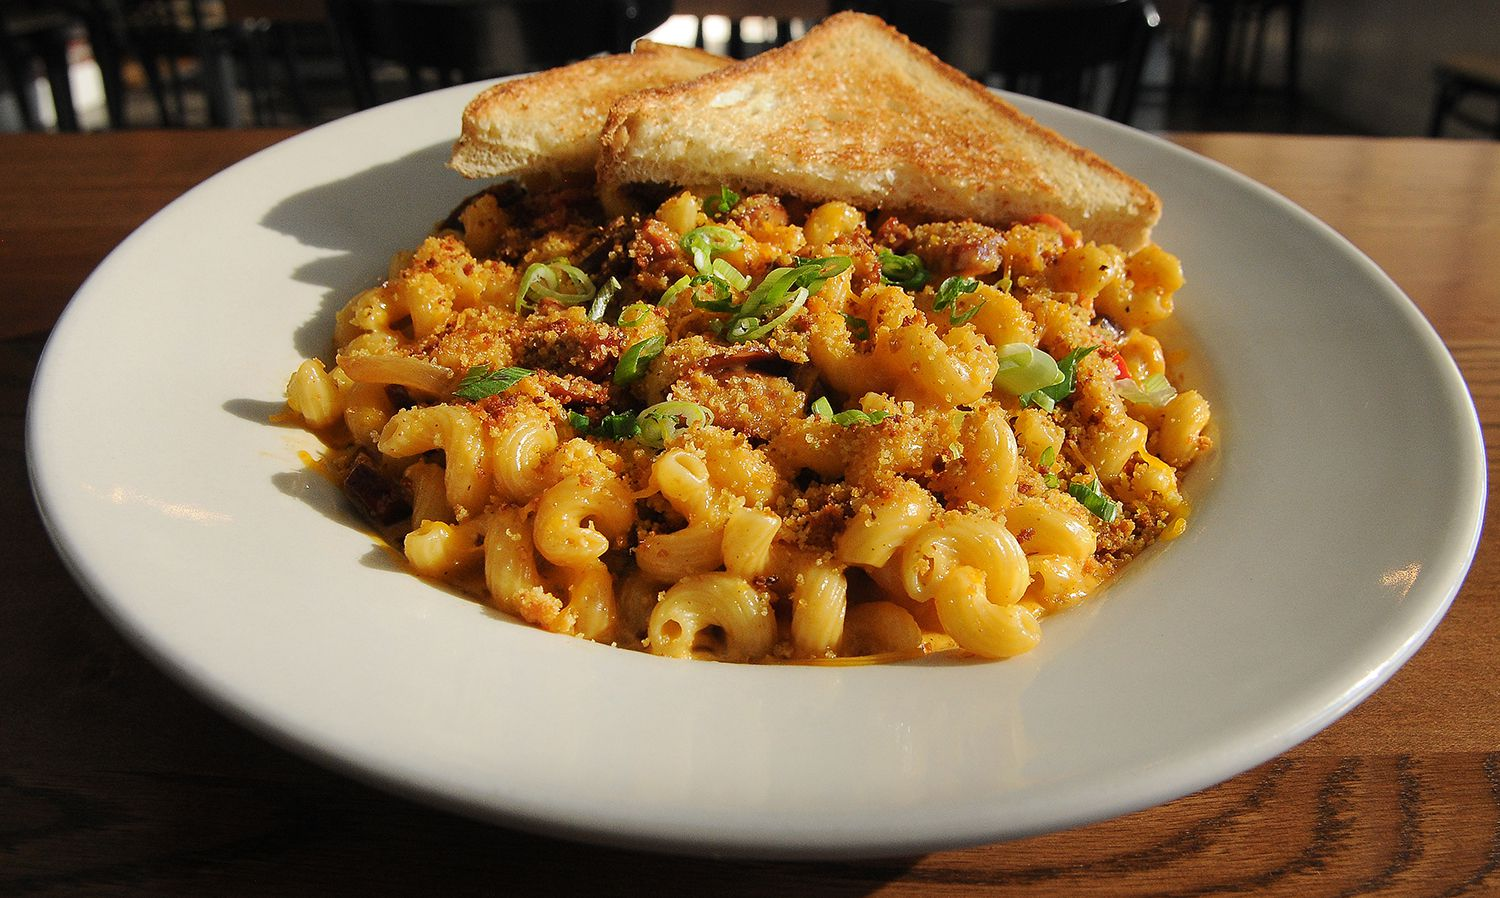 Macaroni and Cheese With Andouille Sausage